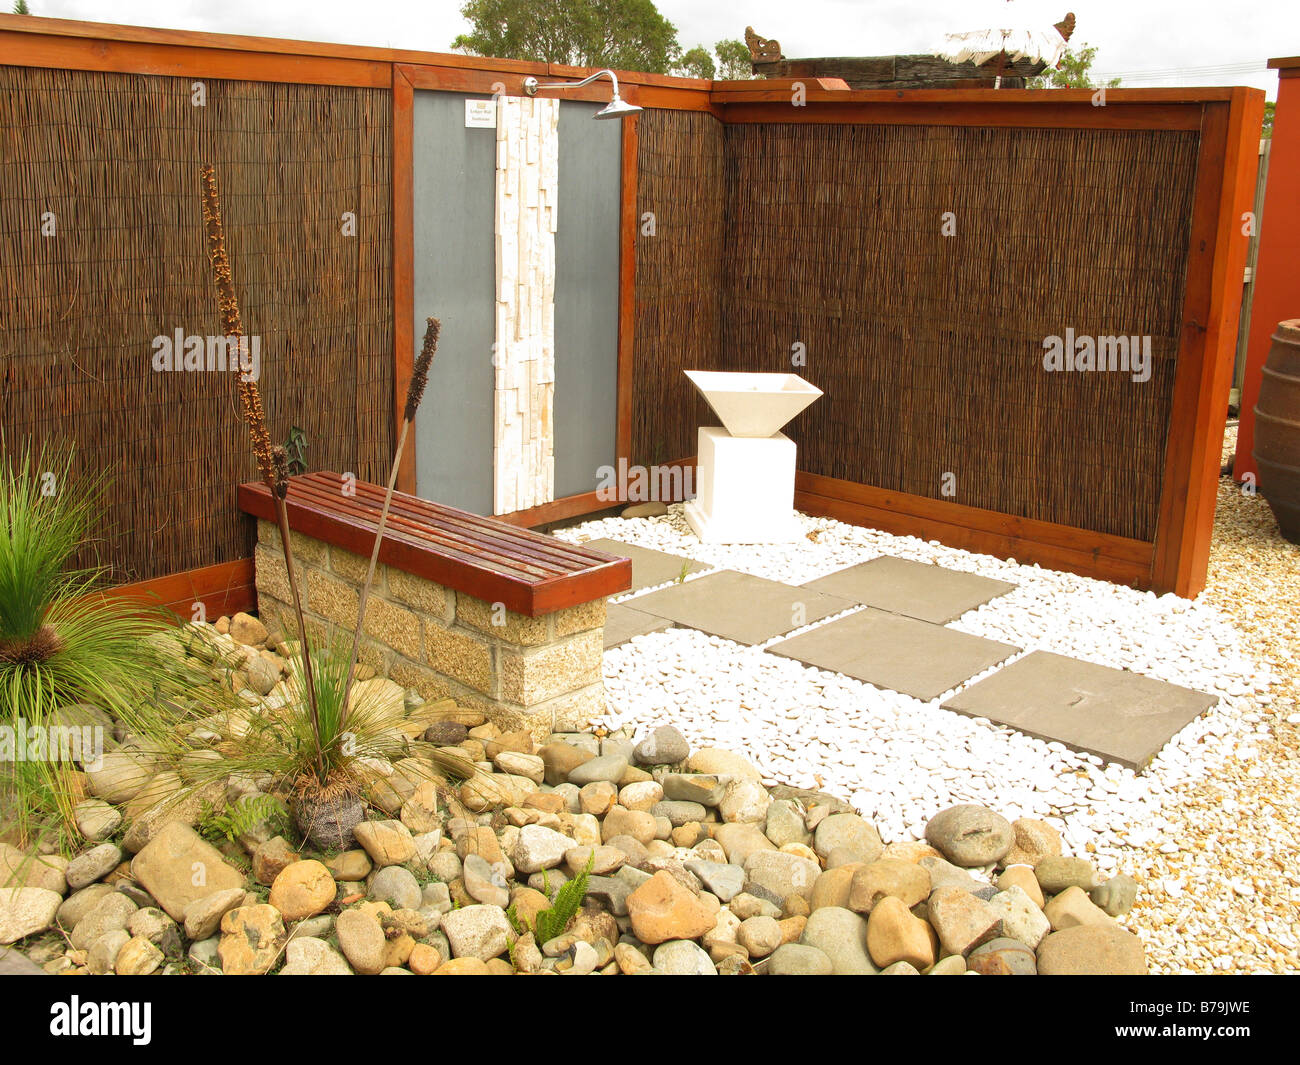 An outdoor shower set in Asian style garden landscape - Stock Image